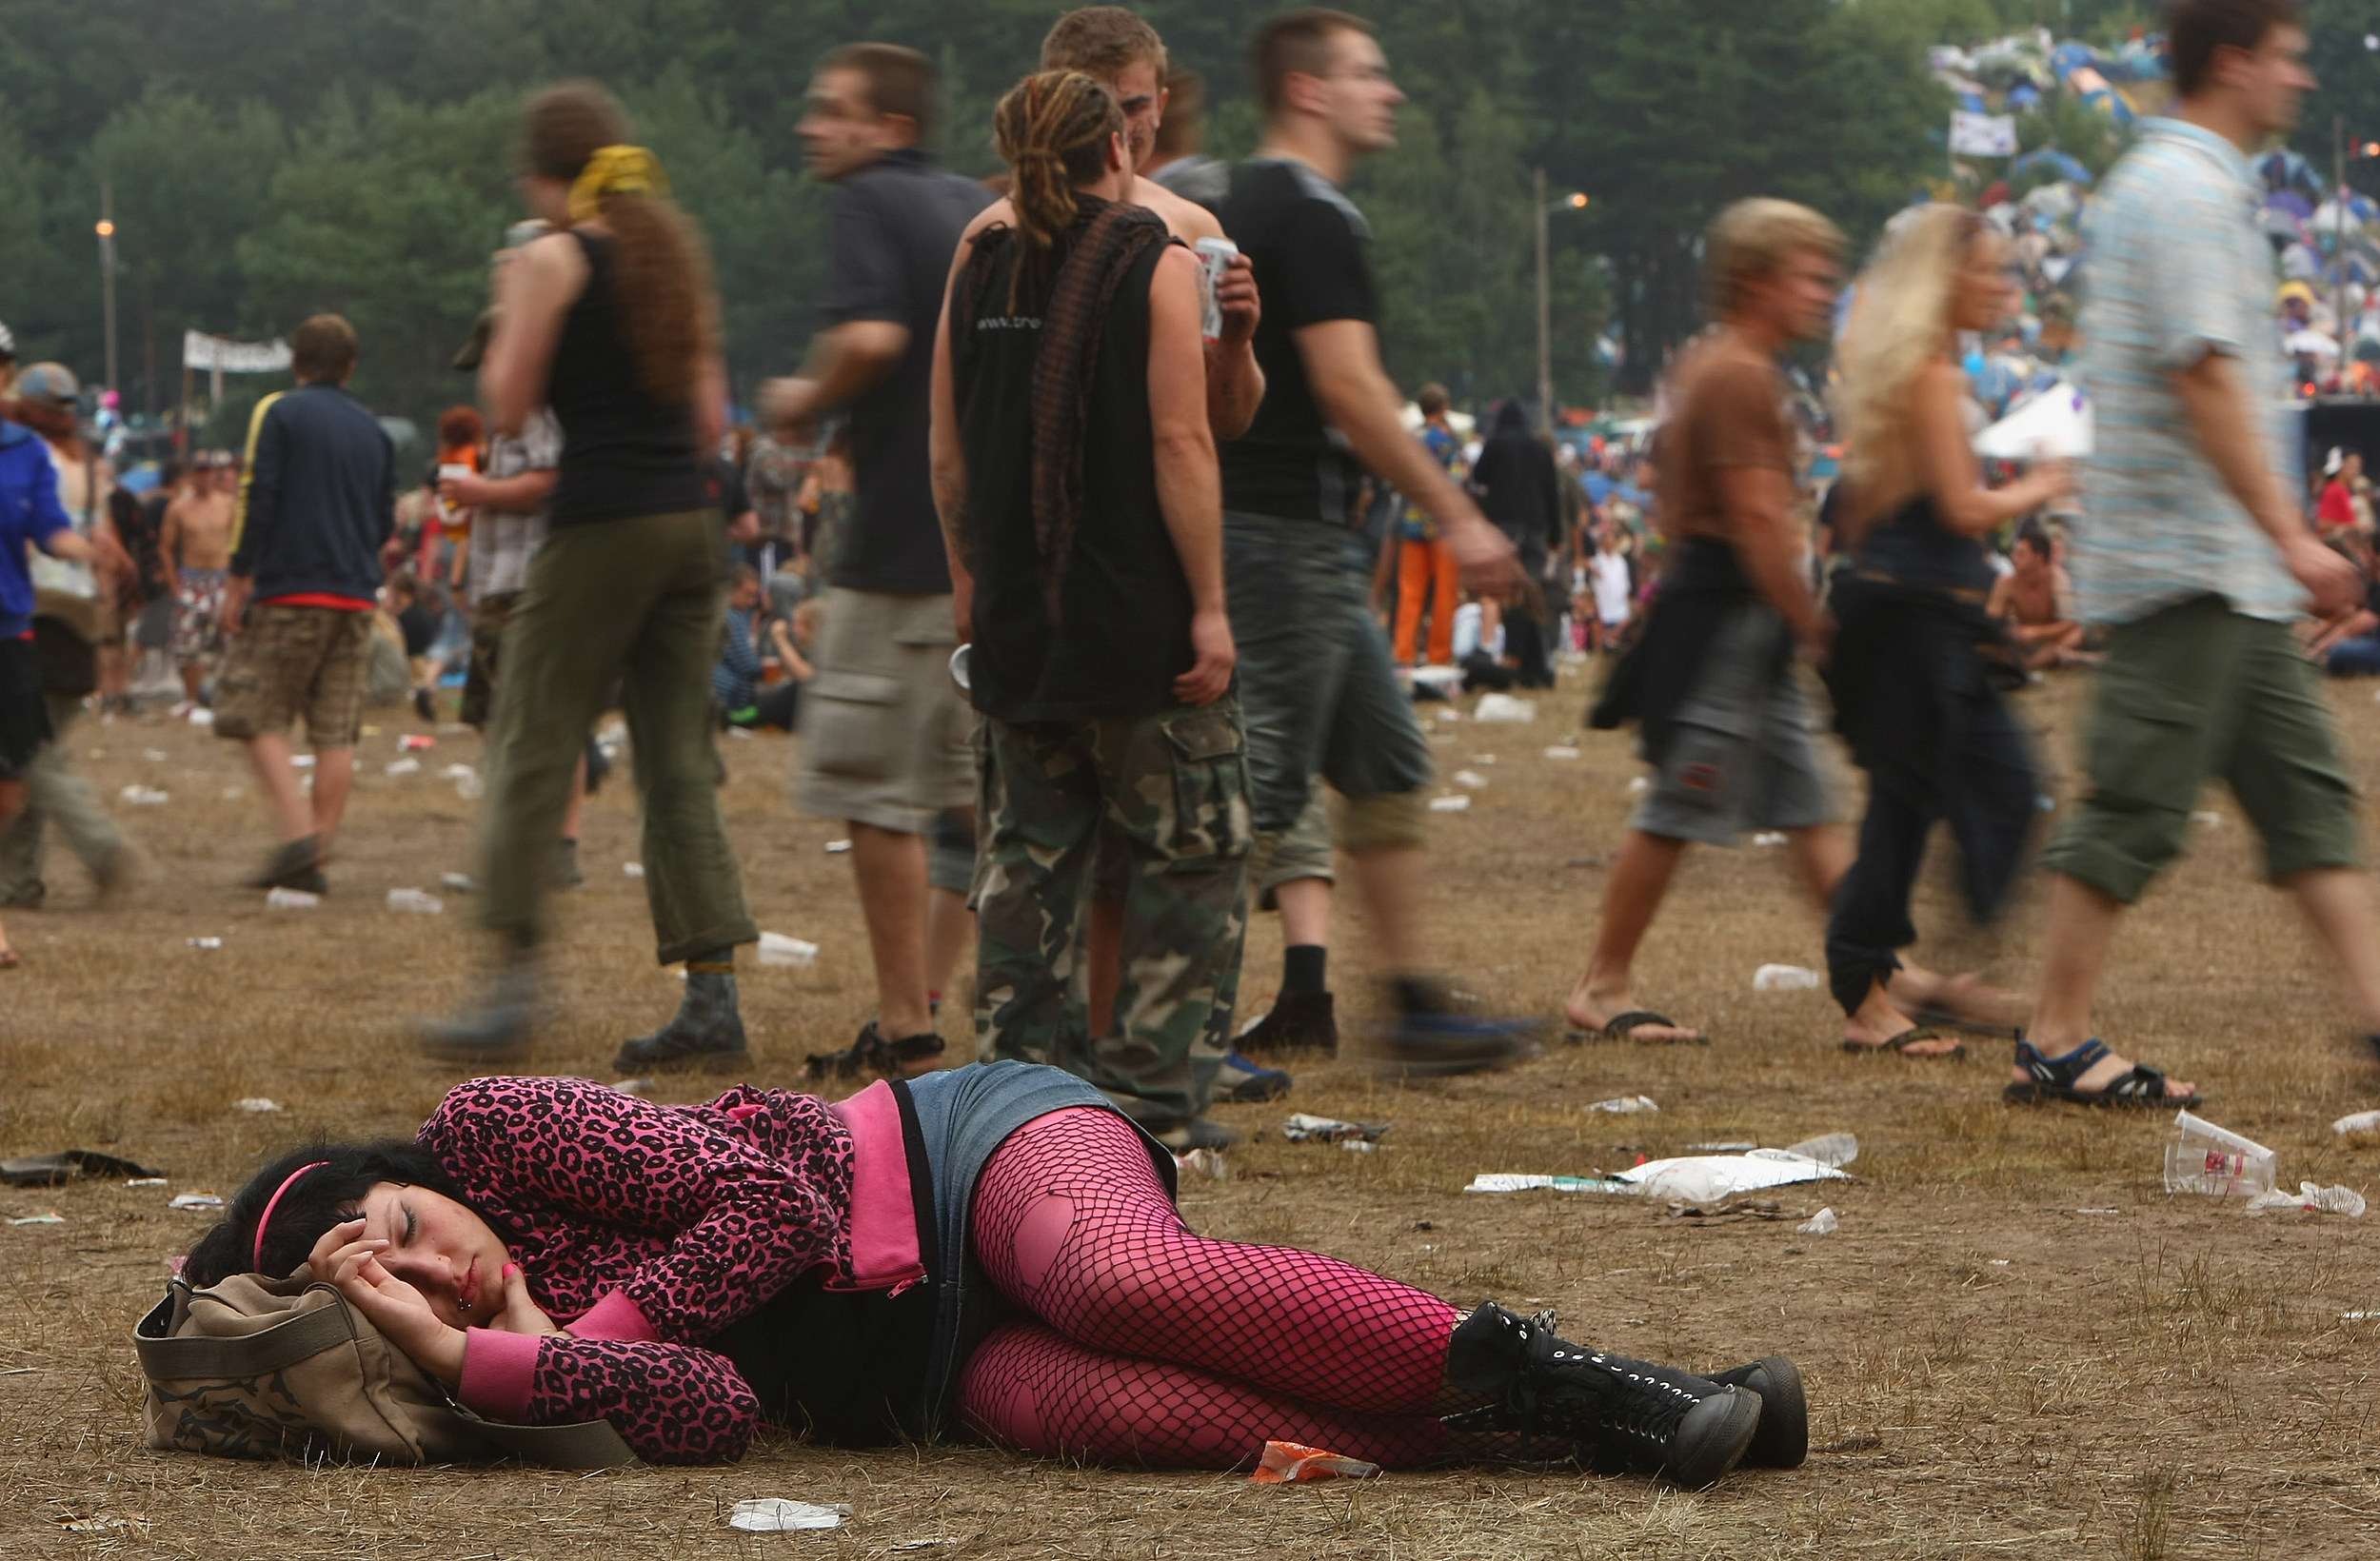 10 Most Shocking Festival Moments